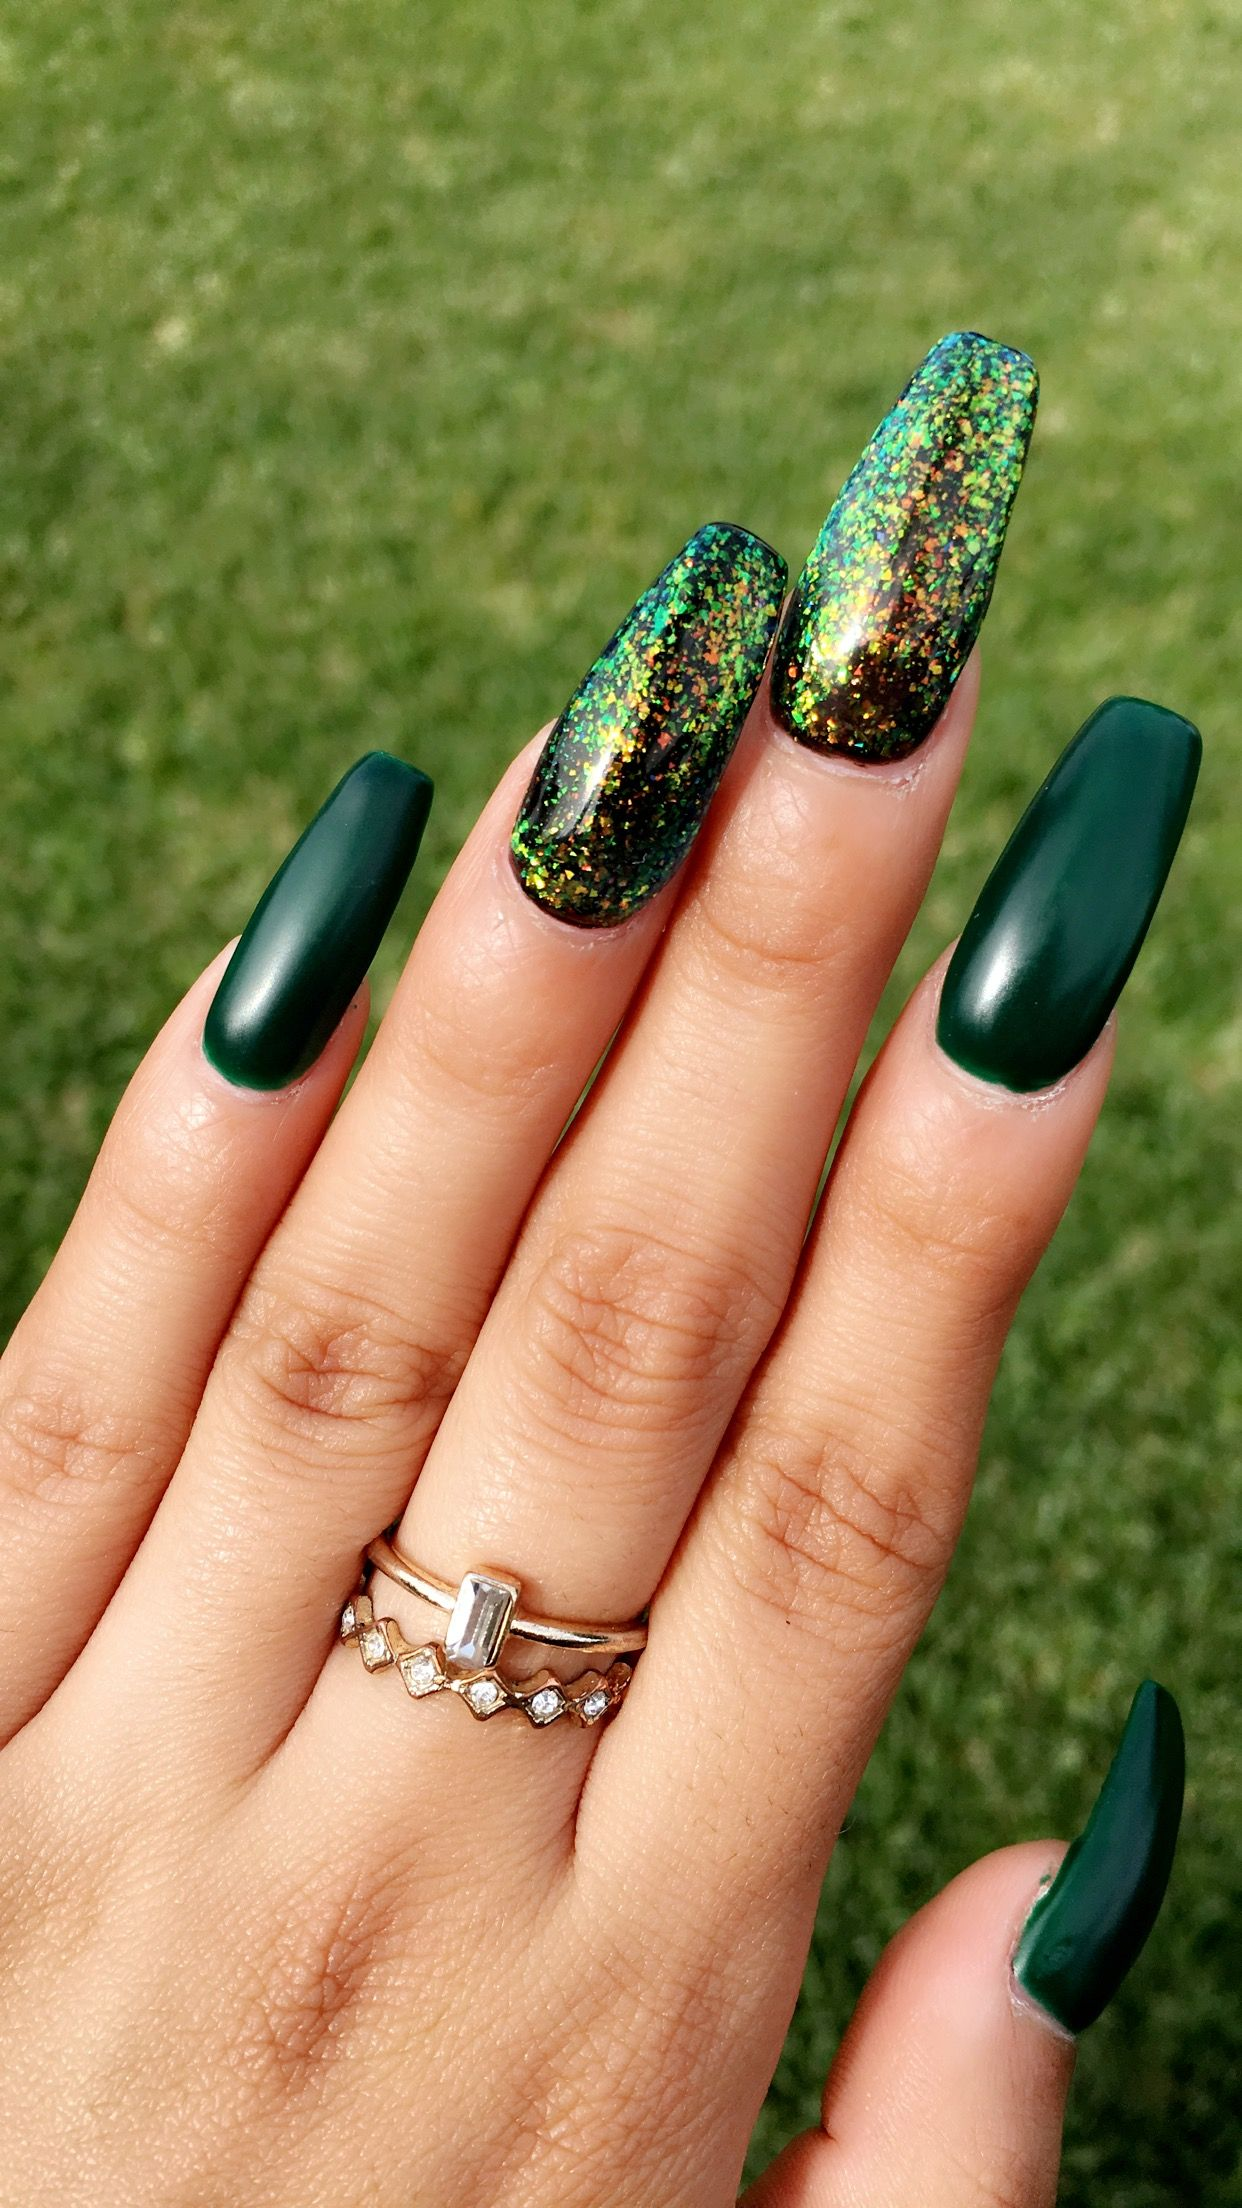 Hunter Green Coffin Nails Green Glitter Green Nails Coffin Nails Dark Nails Matte Nails Matte Green Nails Dark Green Nails Nail Colors Winter